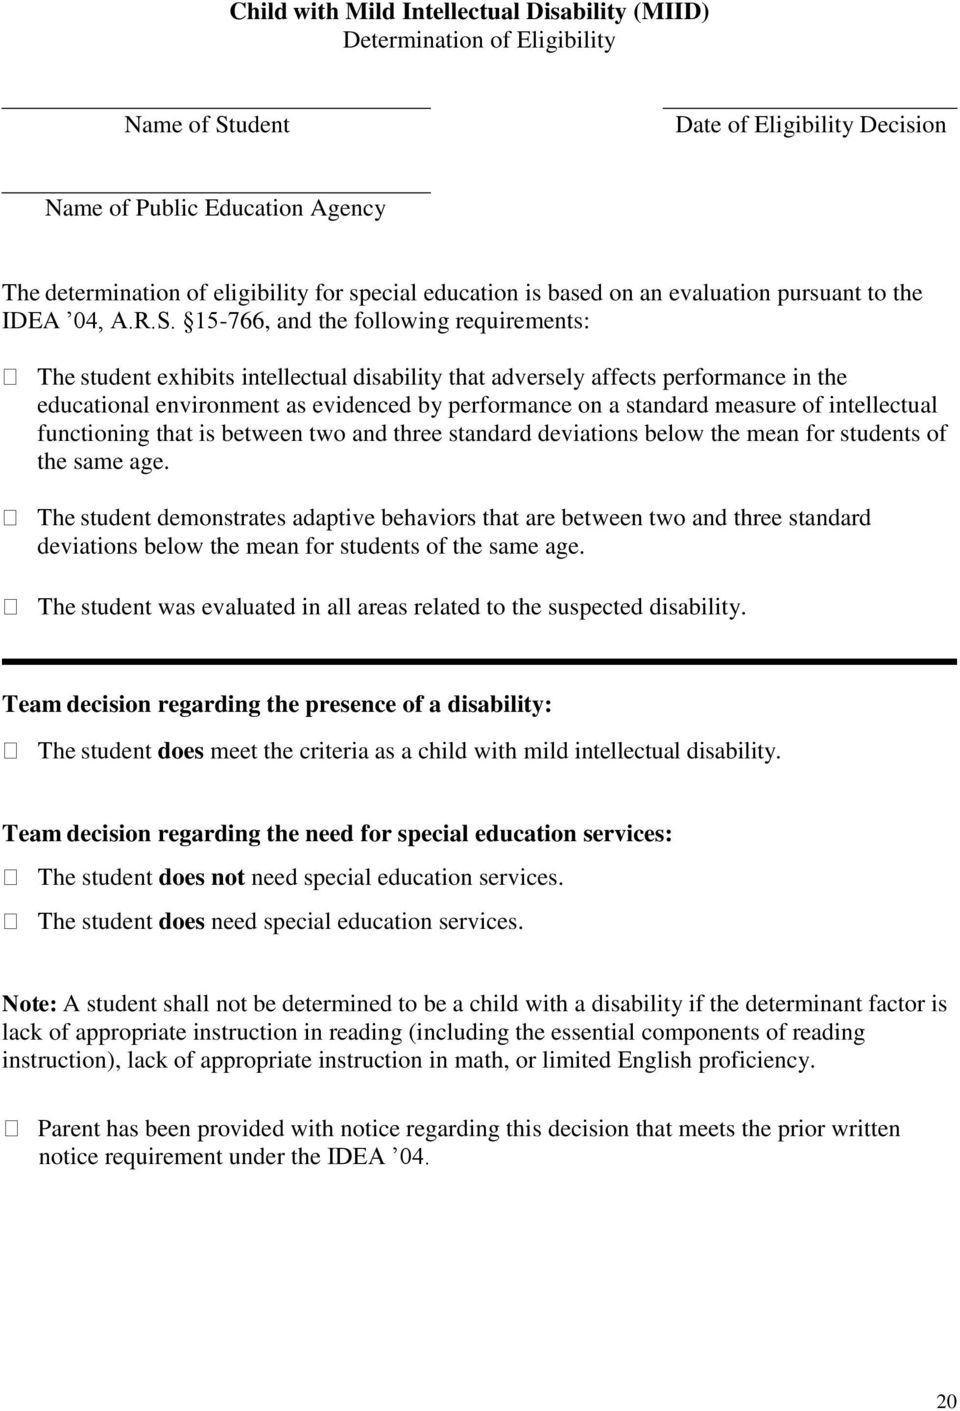 15-766, and the following requirements: The student exhibits intellectual disability that adversely affects performance in the educational environment as evidenced by performance on a standard